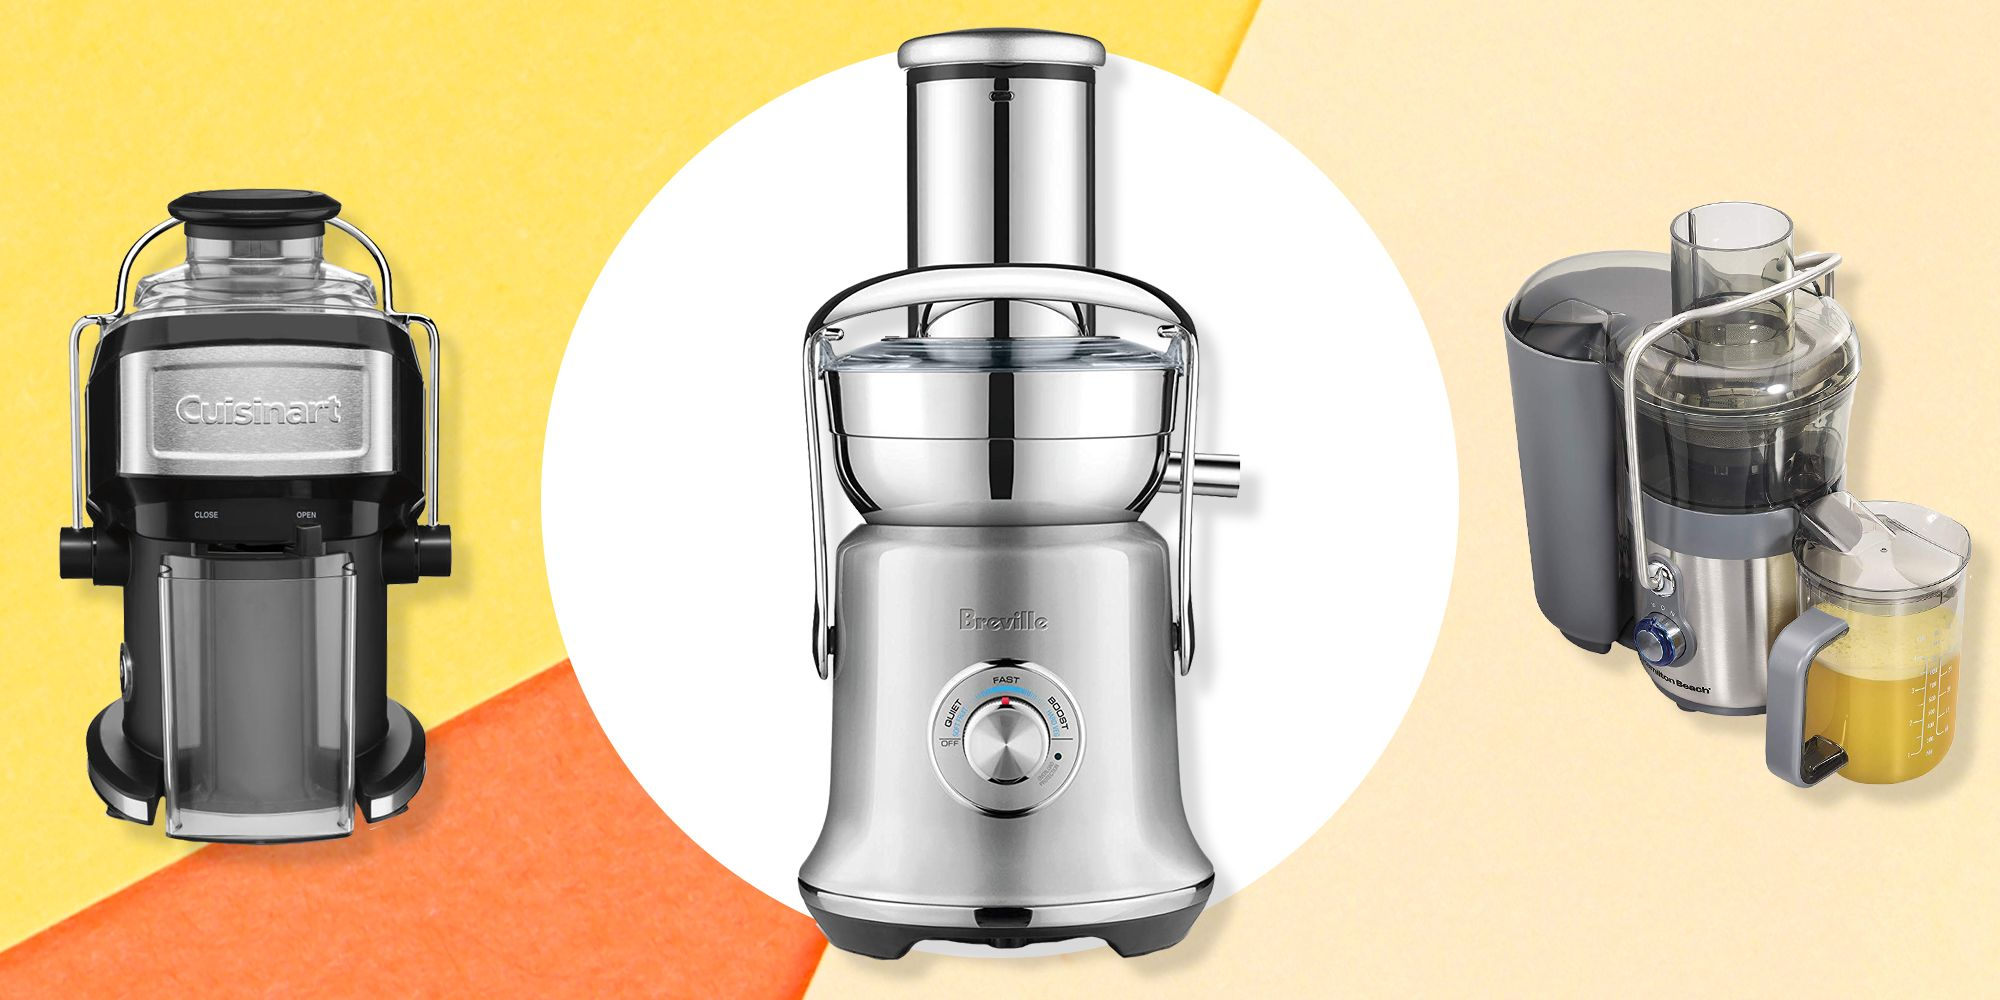 The 5 Best Juicers To Buy, According To Test Kitchen Pros